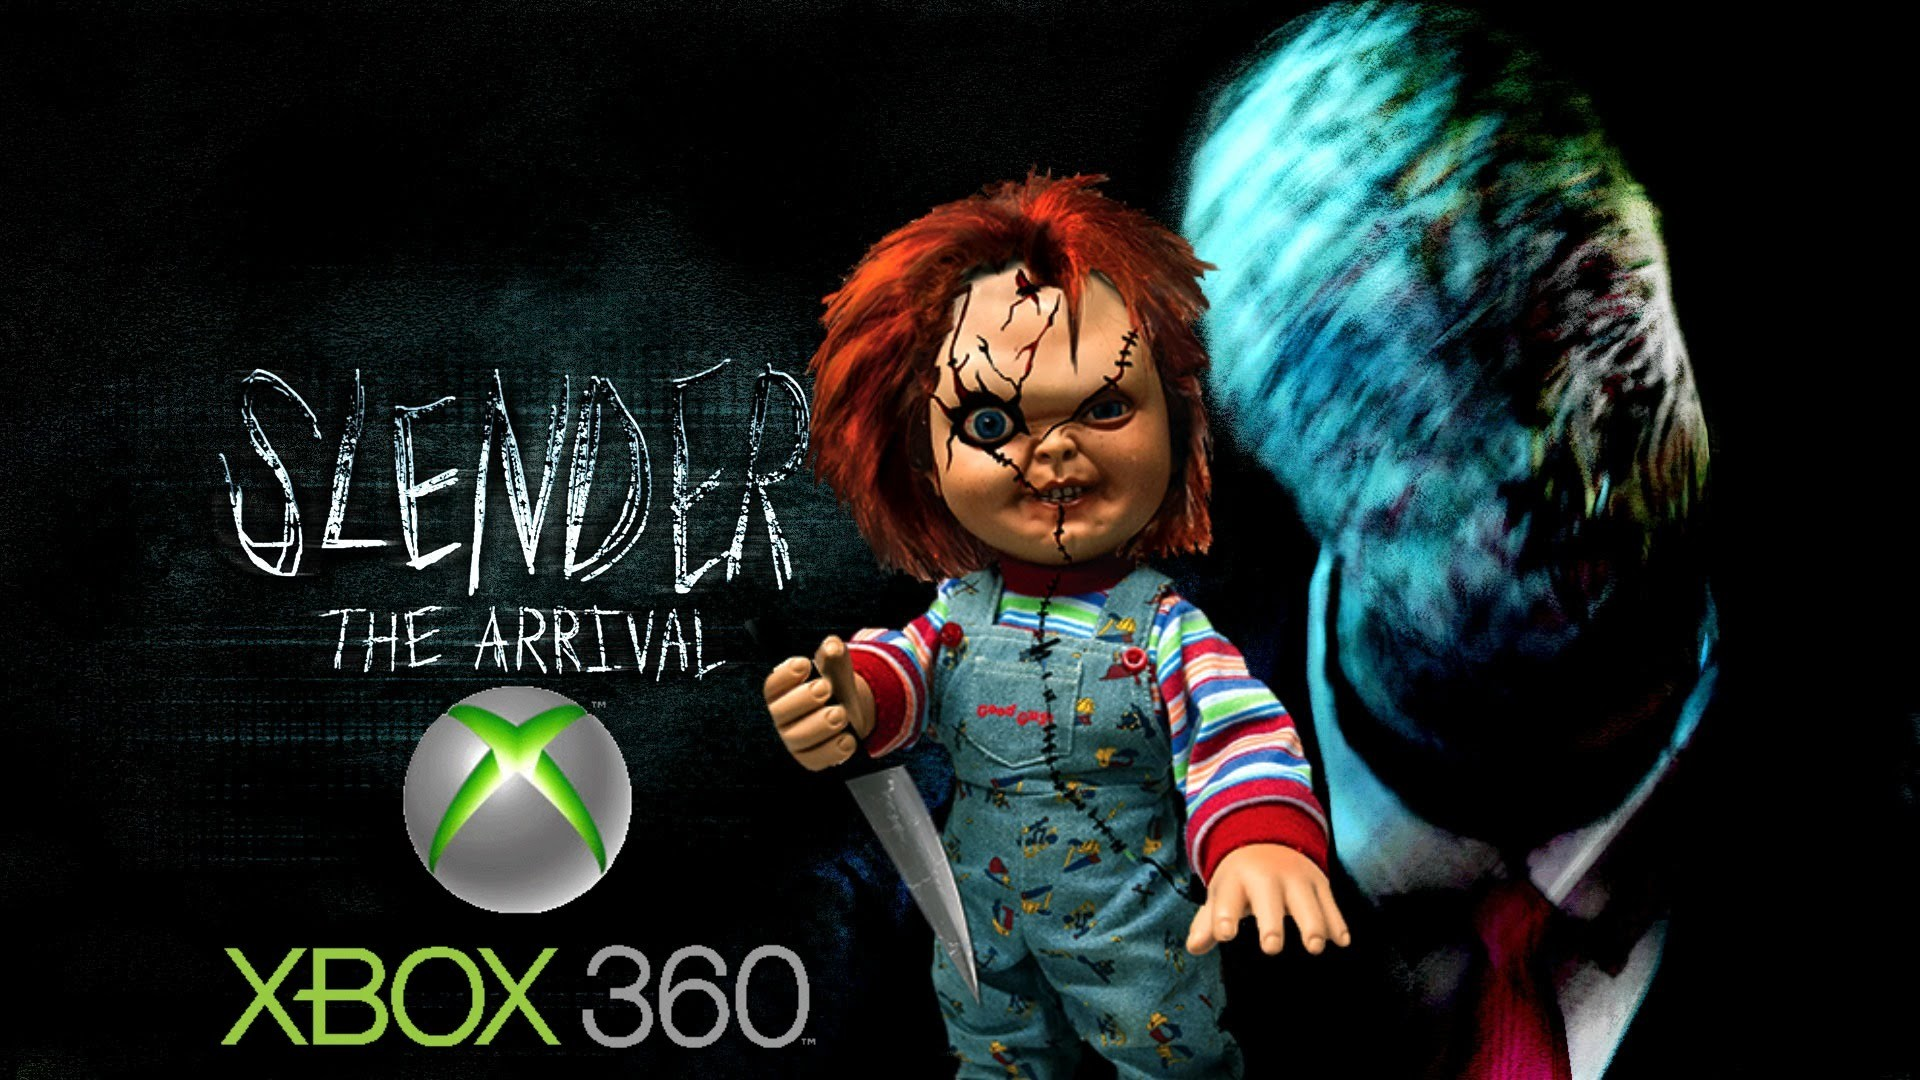 Chucky Speaks: Slender The Arrival Coming to Xbox 360?